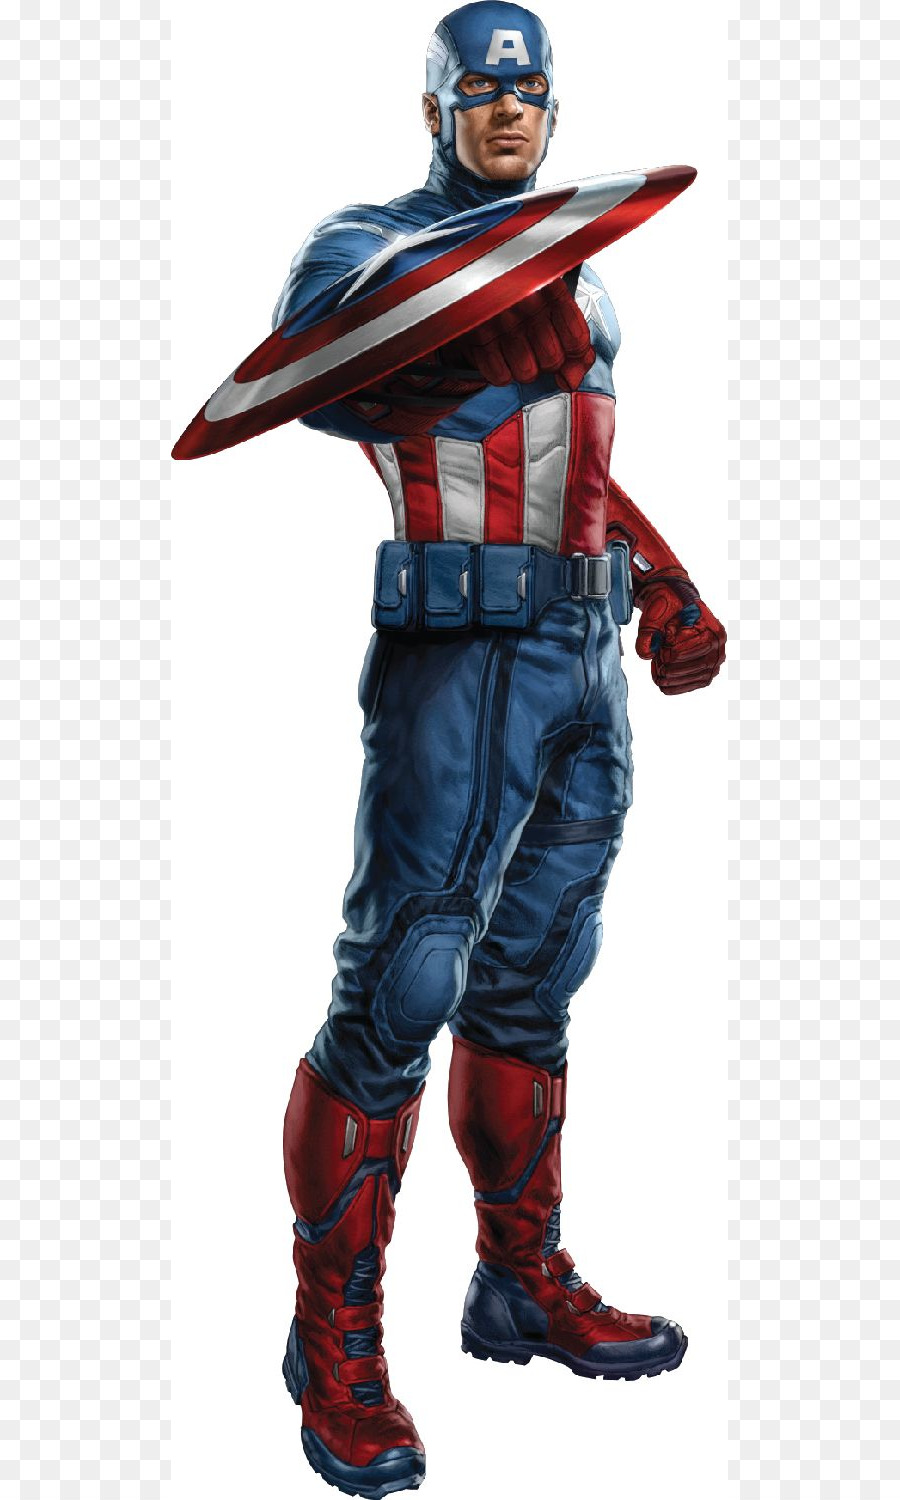 Captain America The Avengers Wall Decal Marvel Cinematic